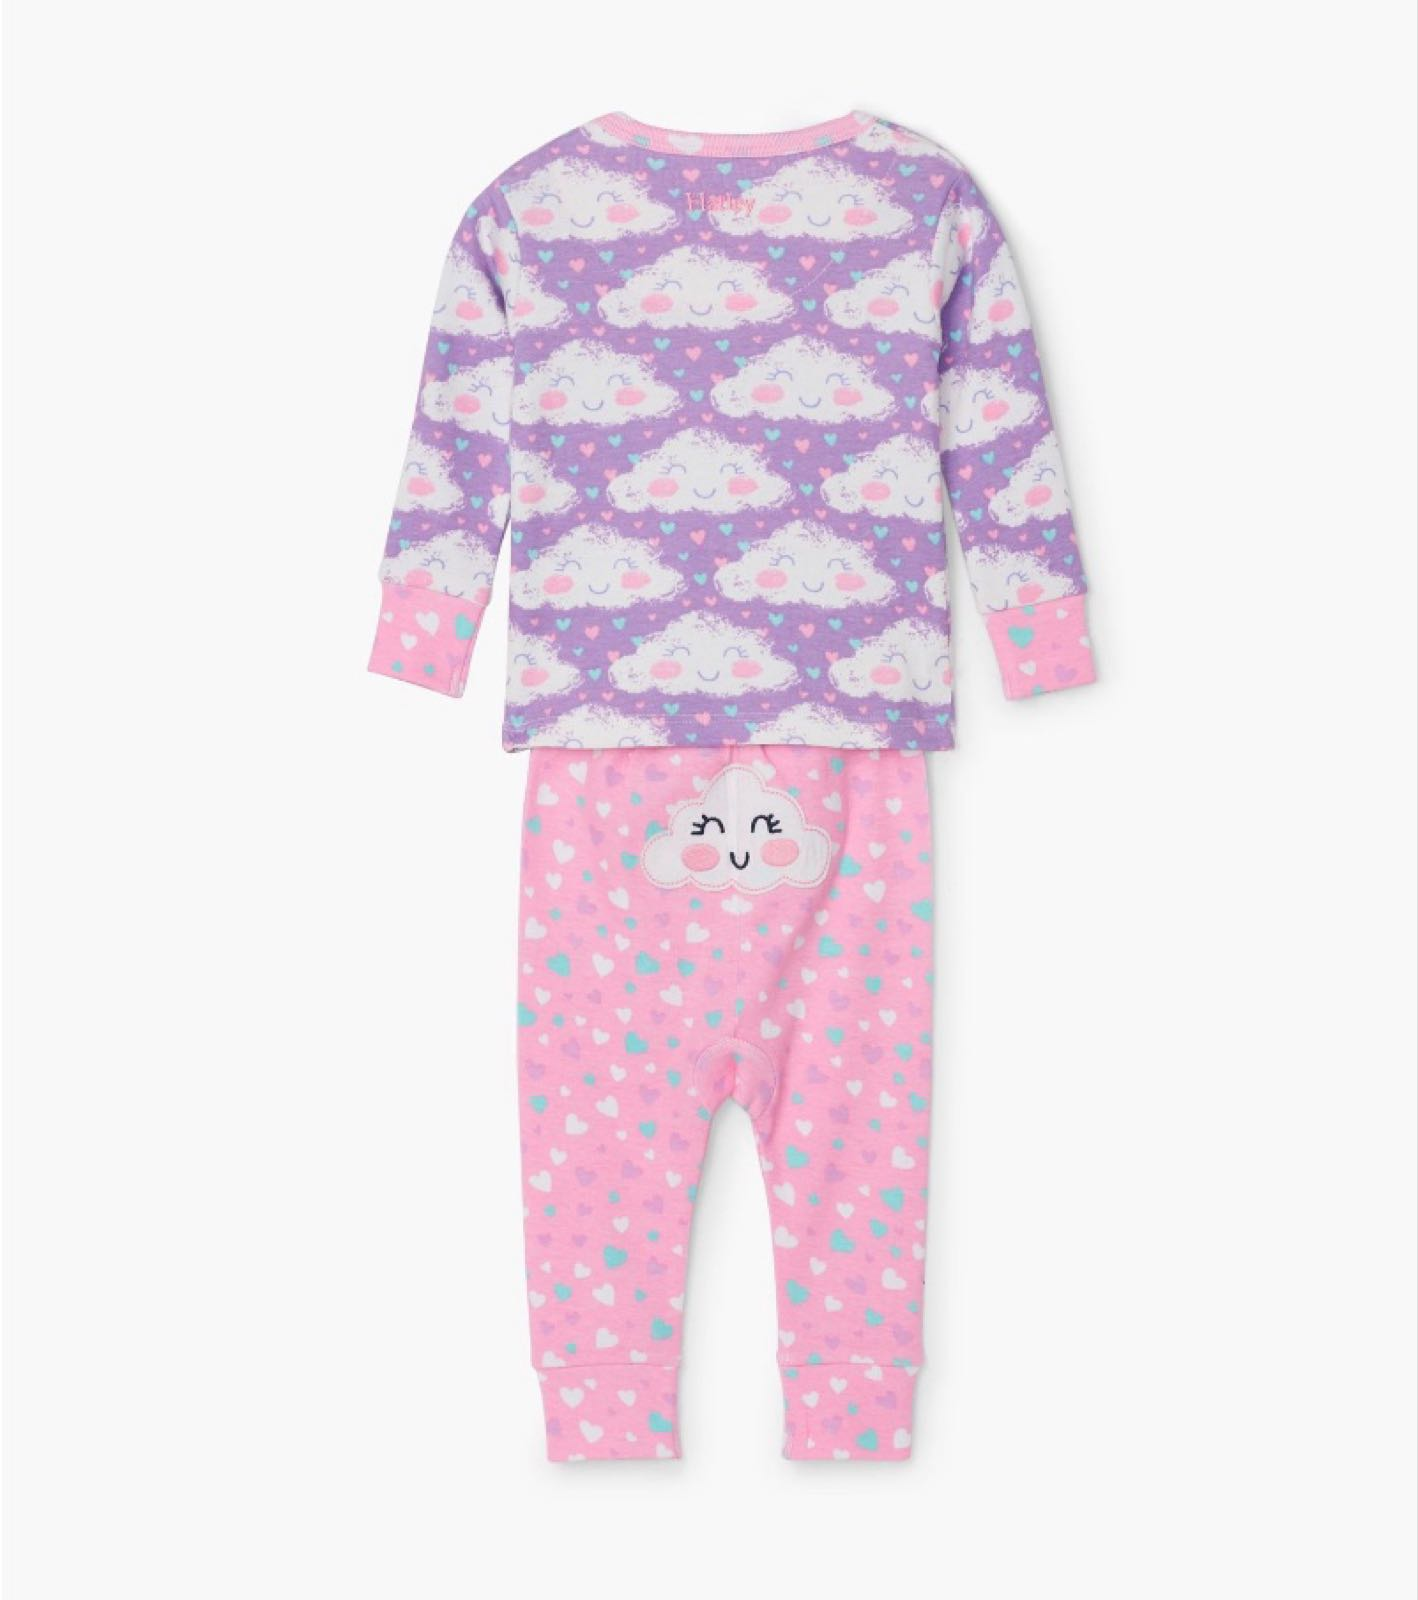 Hatley Cheerful Clouds Organic Cotton Baby Pyjamas